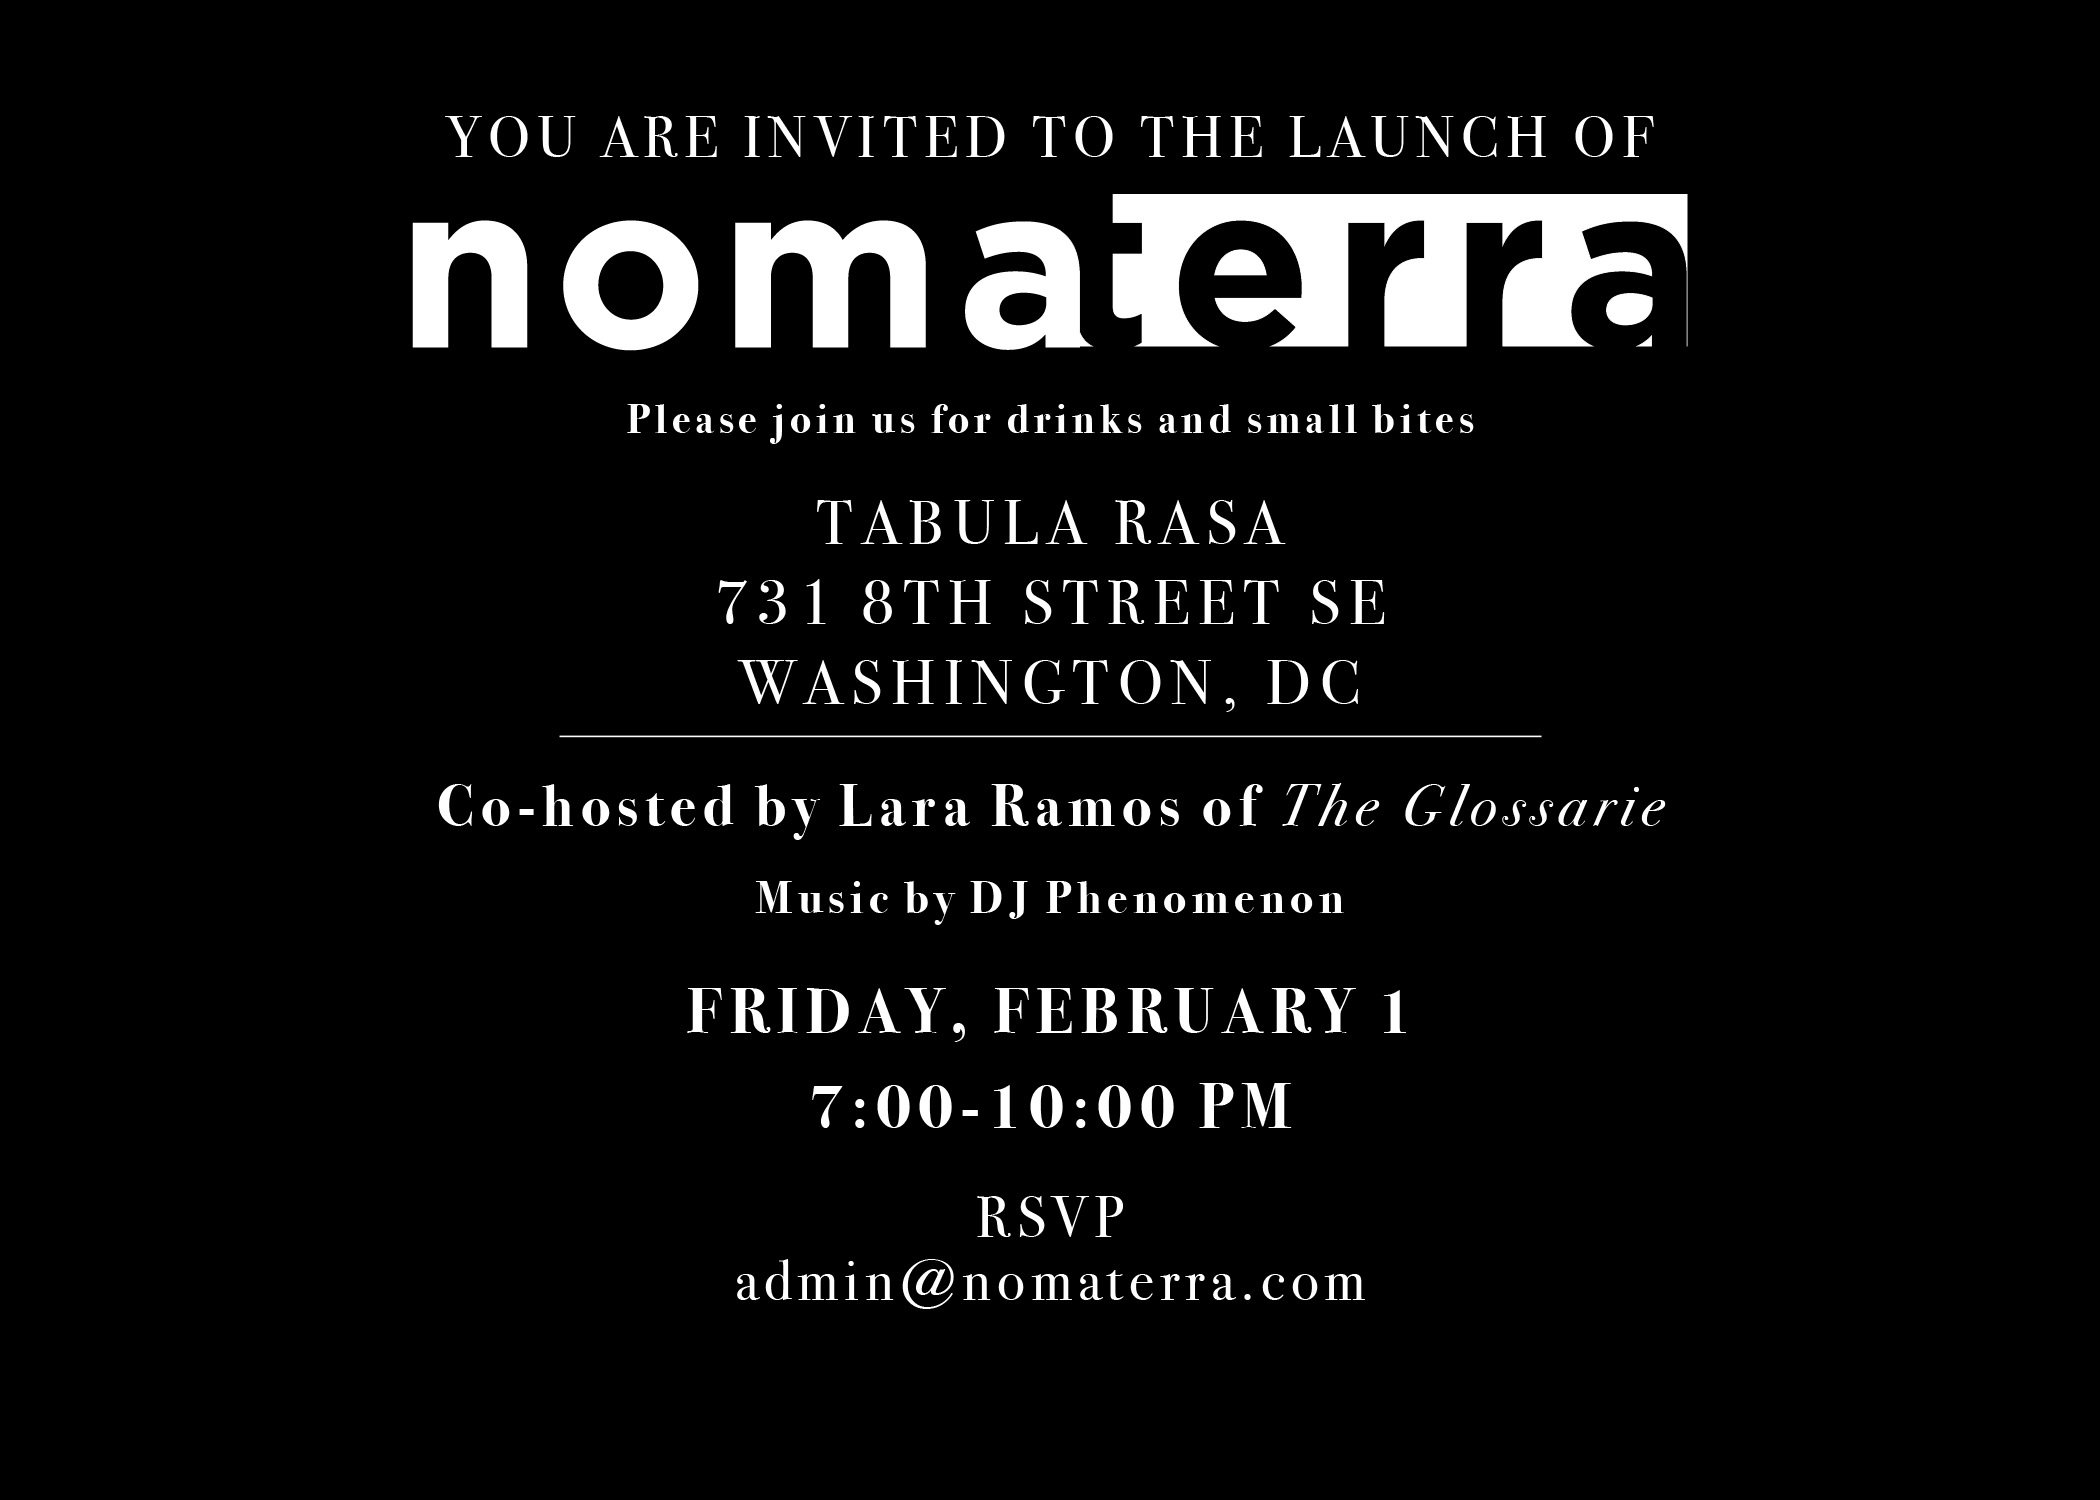 nomaterra dc fragrance  launch party  the glossariethe glossarie, party invitations